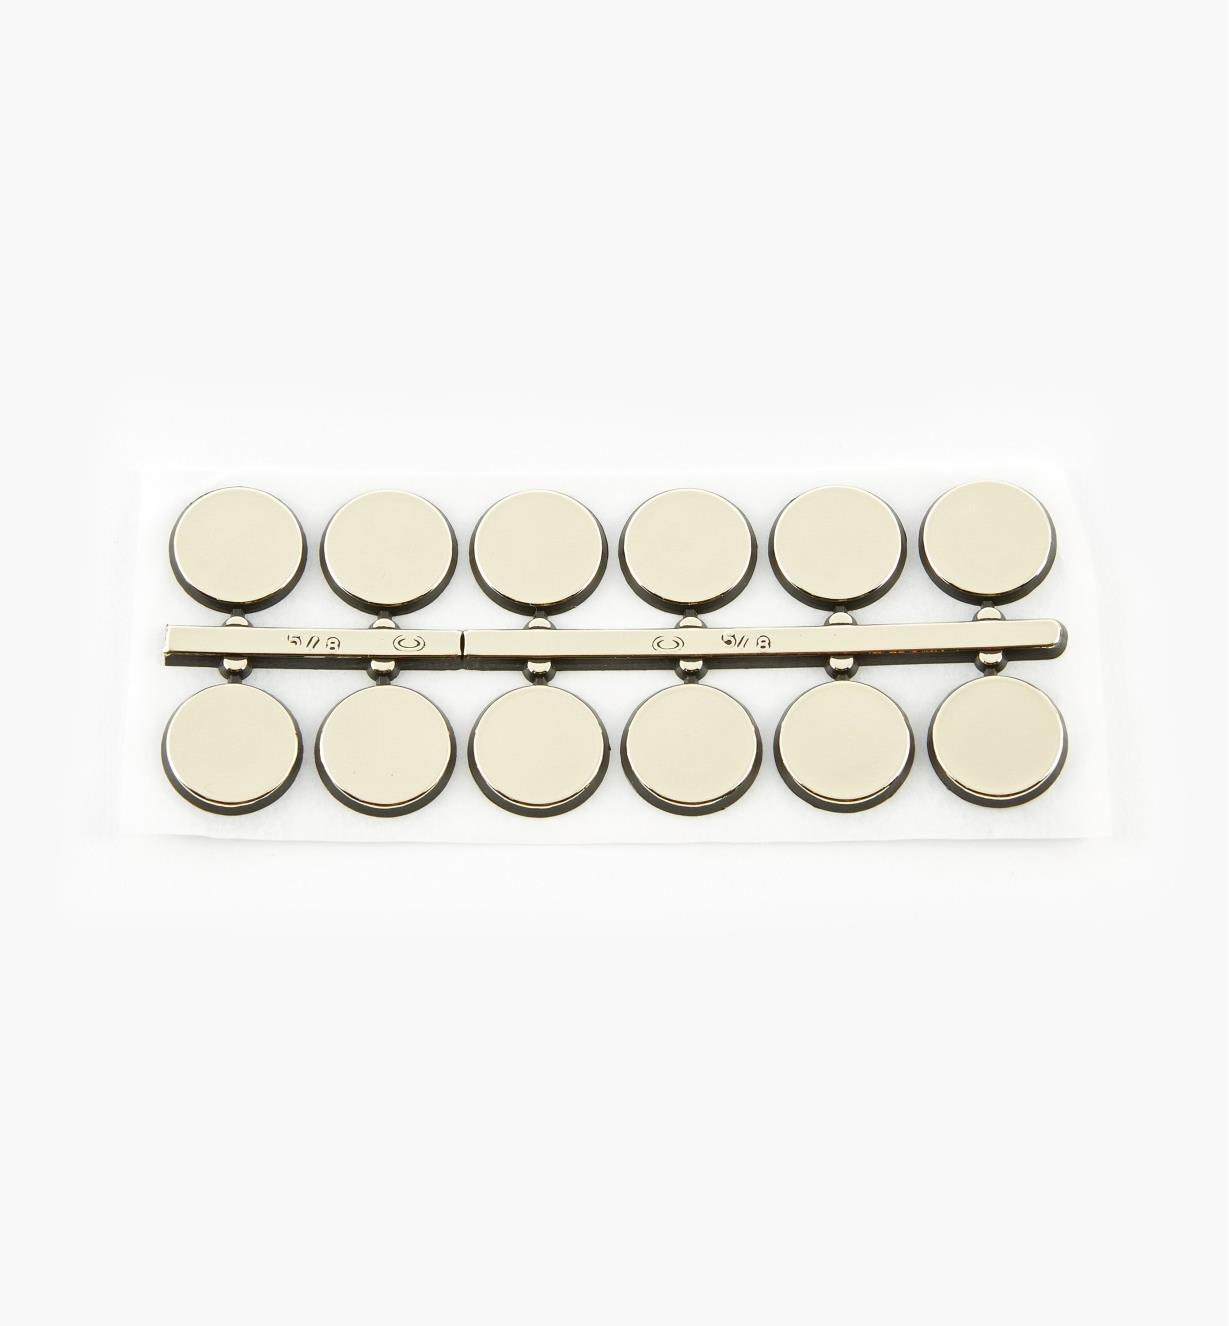 "46K5801 - 5/8"" dia. Dots Adhesive-Backed Numerals, set of 12"